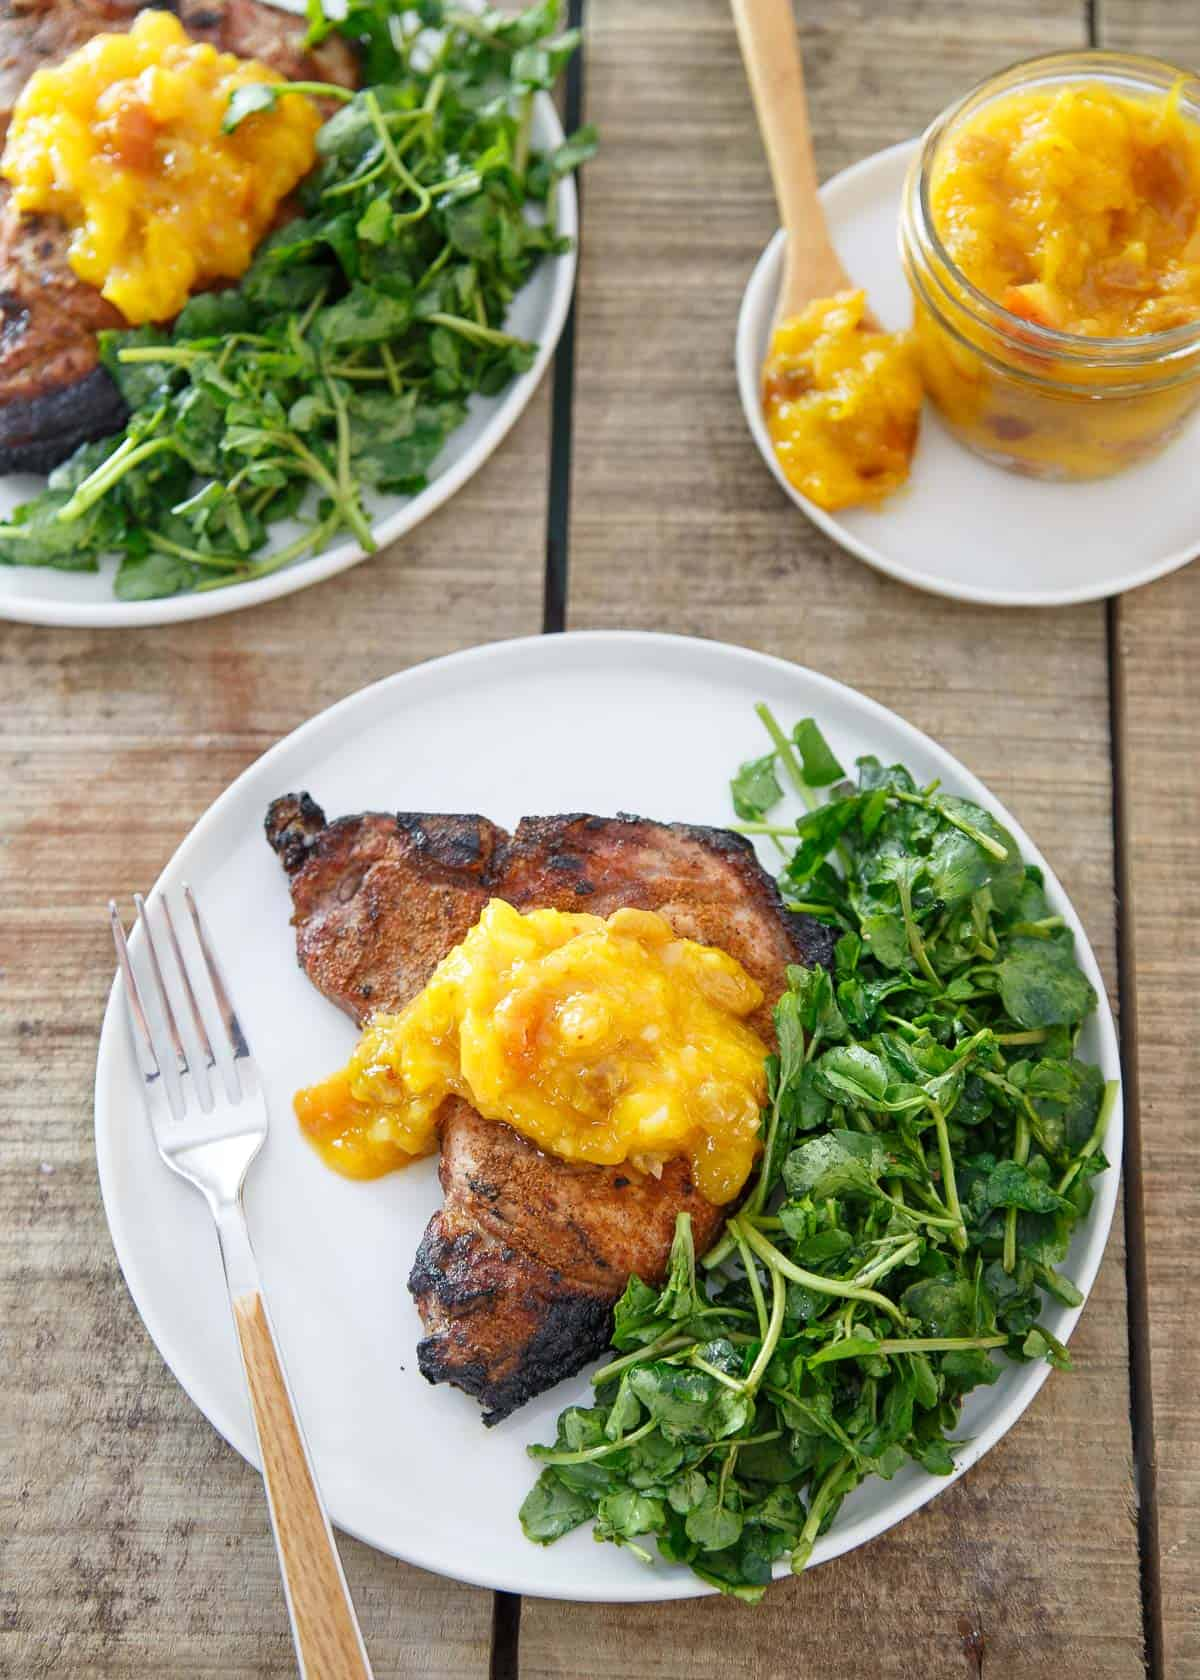 Thick cut bone-in pork chops are spice rubbed, grilled and topped with a mango peach chutney that brings the perfect sweetness to each bite.